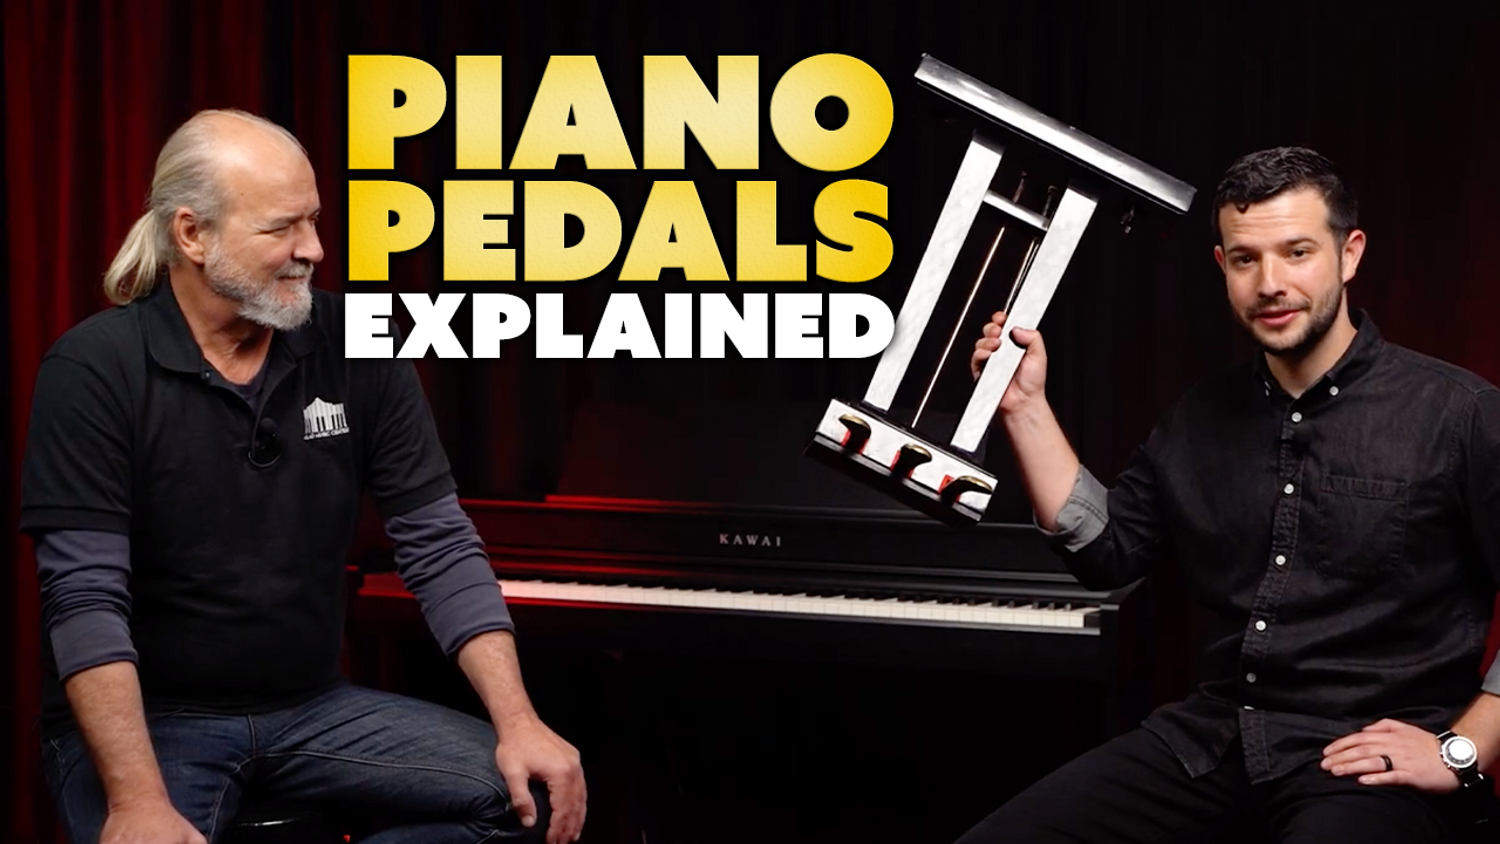 Piano Pedals Explained